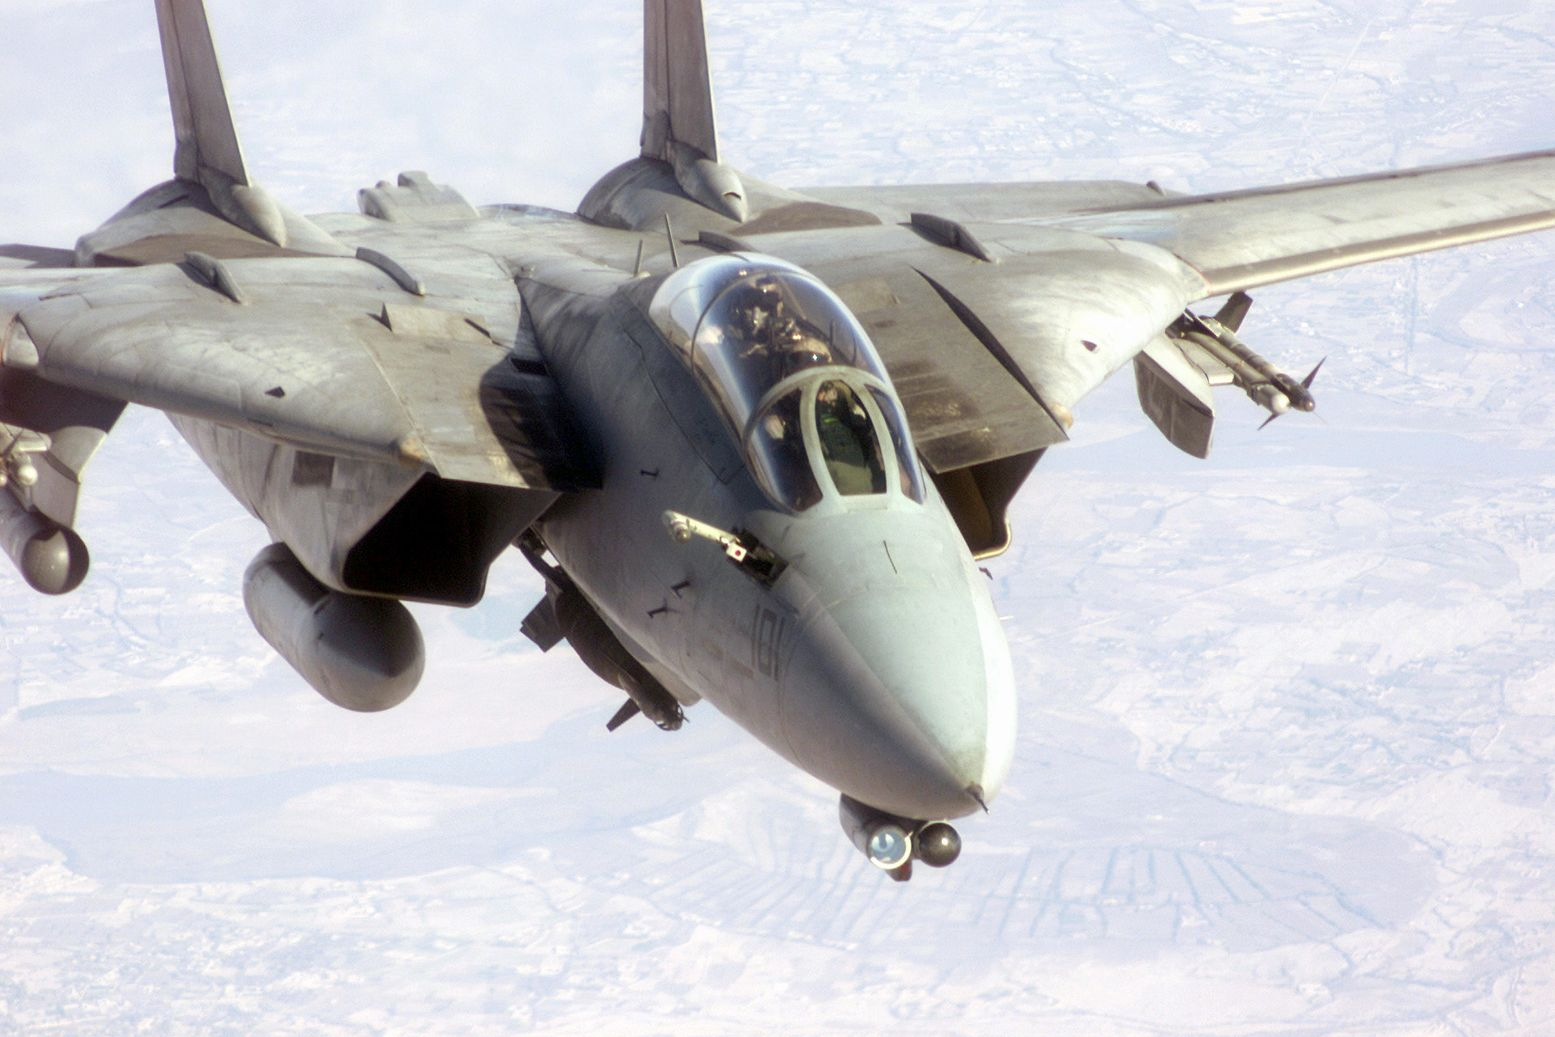 Yes, Iran Is Still Using (And Upgrading) Old F-14 Tomcats